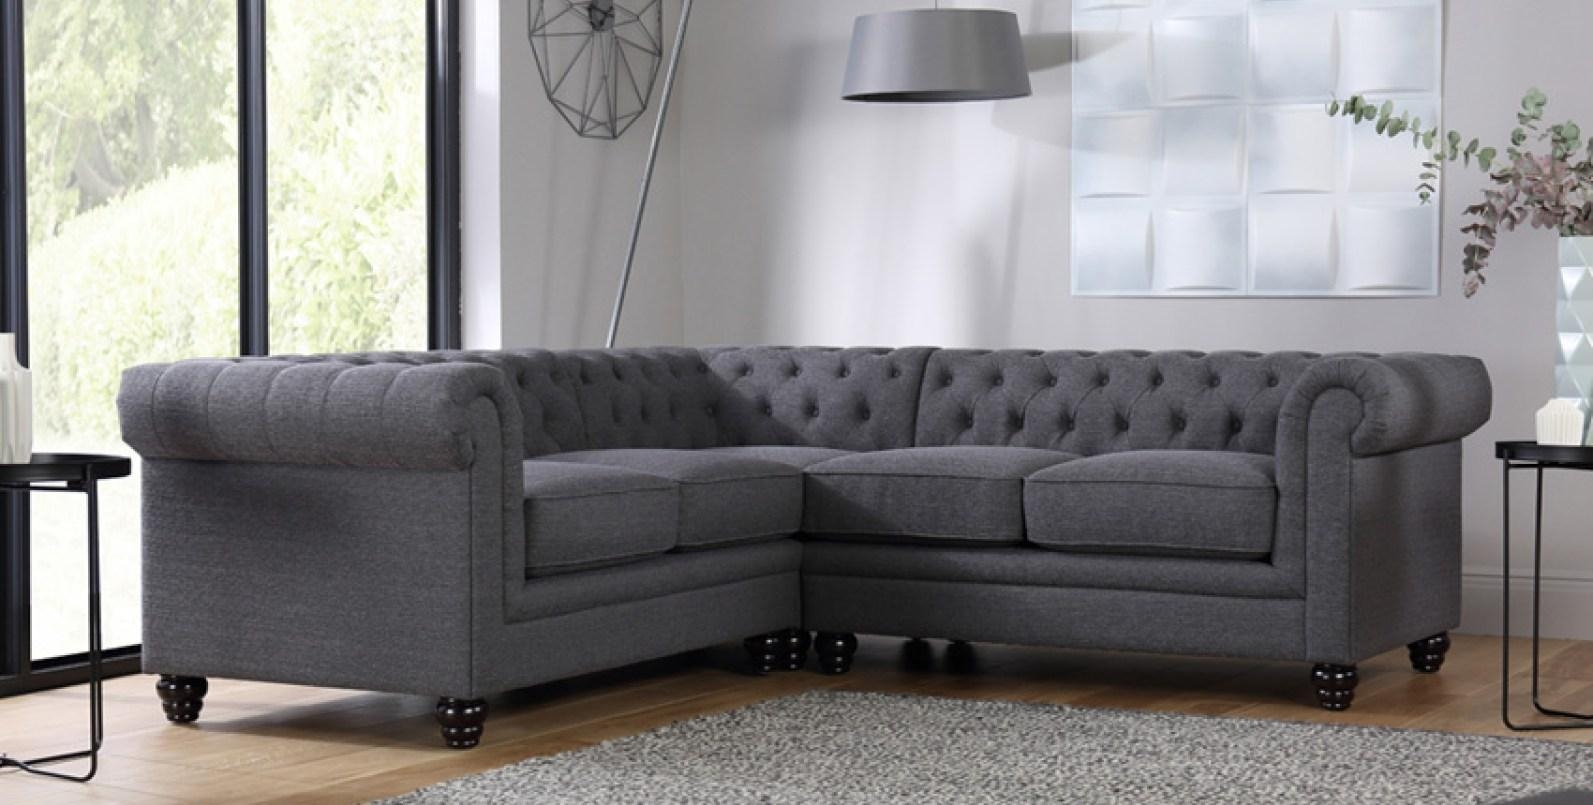 Sofa : New Model Corner Sofa Set With Warranty Offer Pricechennaiw Within 2X2 Corner Sofas (View 6 of 21)